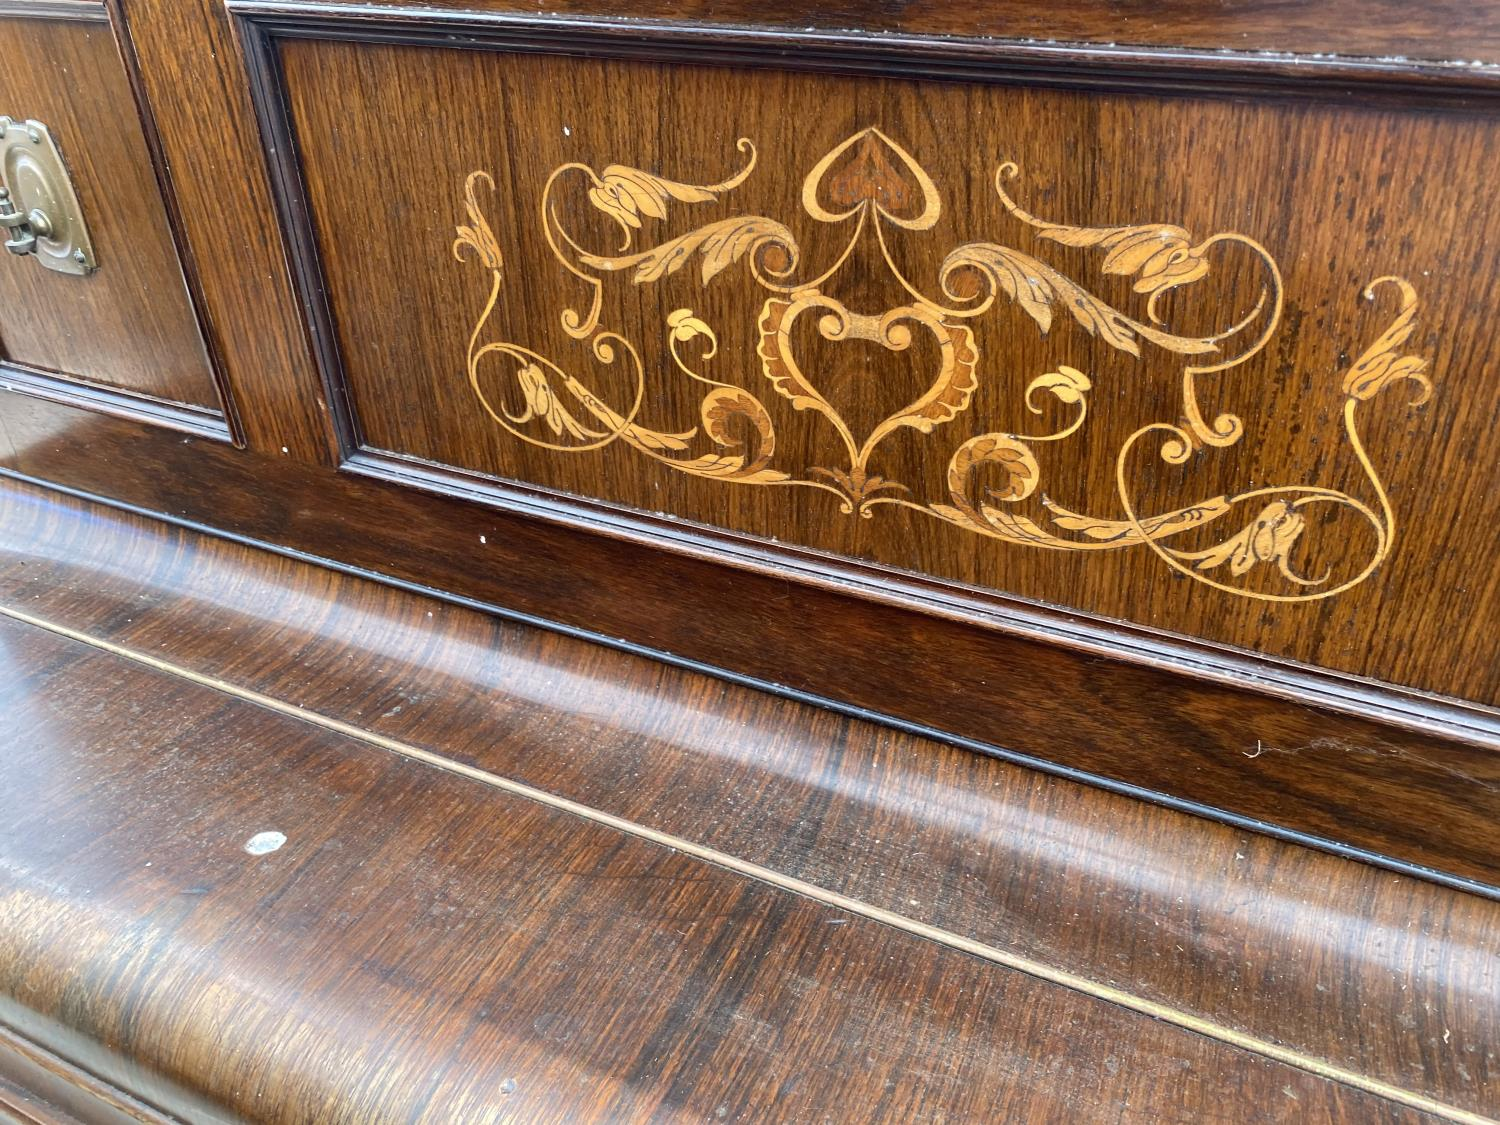 A CHAPPELL & CO LTD UPRIGHT PIANO STAMPED HARTSON & SON, NEWARK - Image 4 of 5